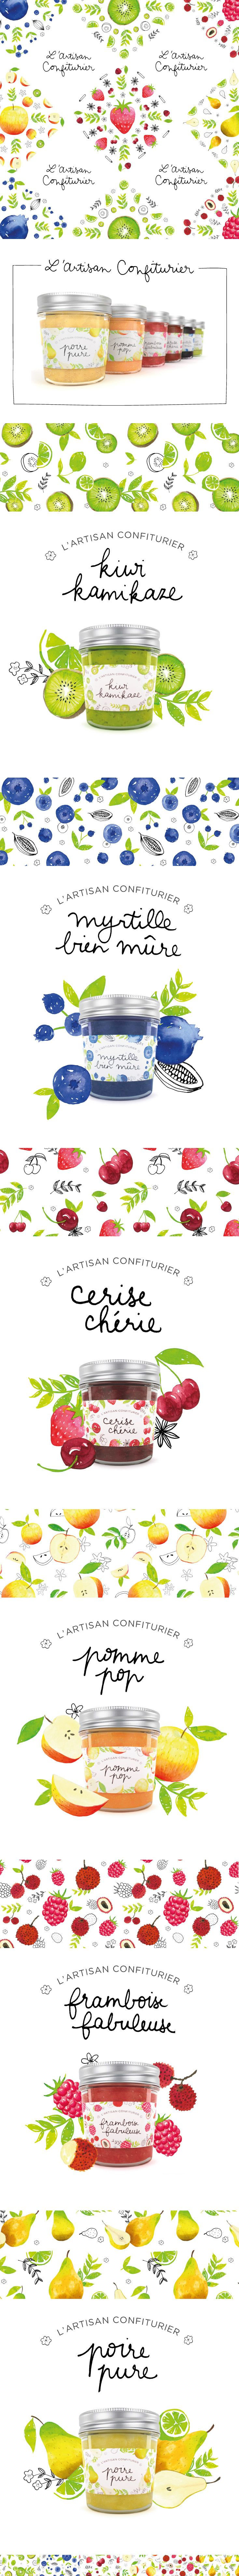 L'Artisan Confiturier - Illustrated Marmelade Packaging on Behance